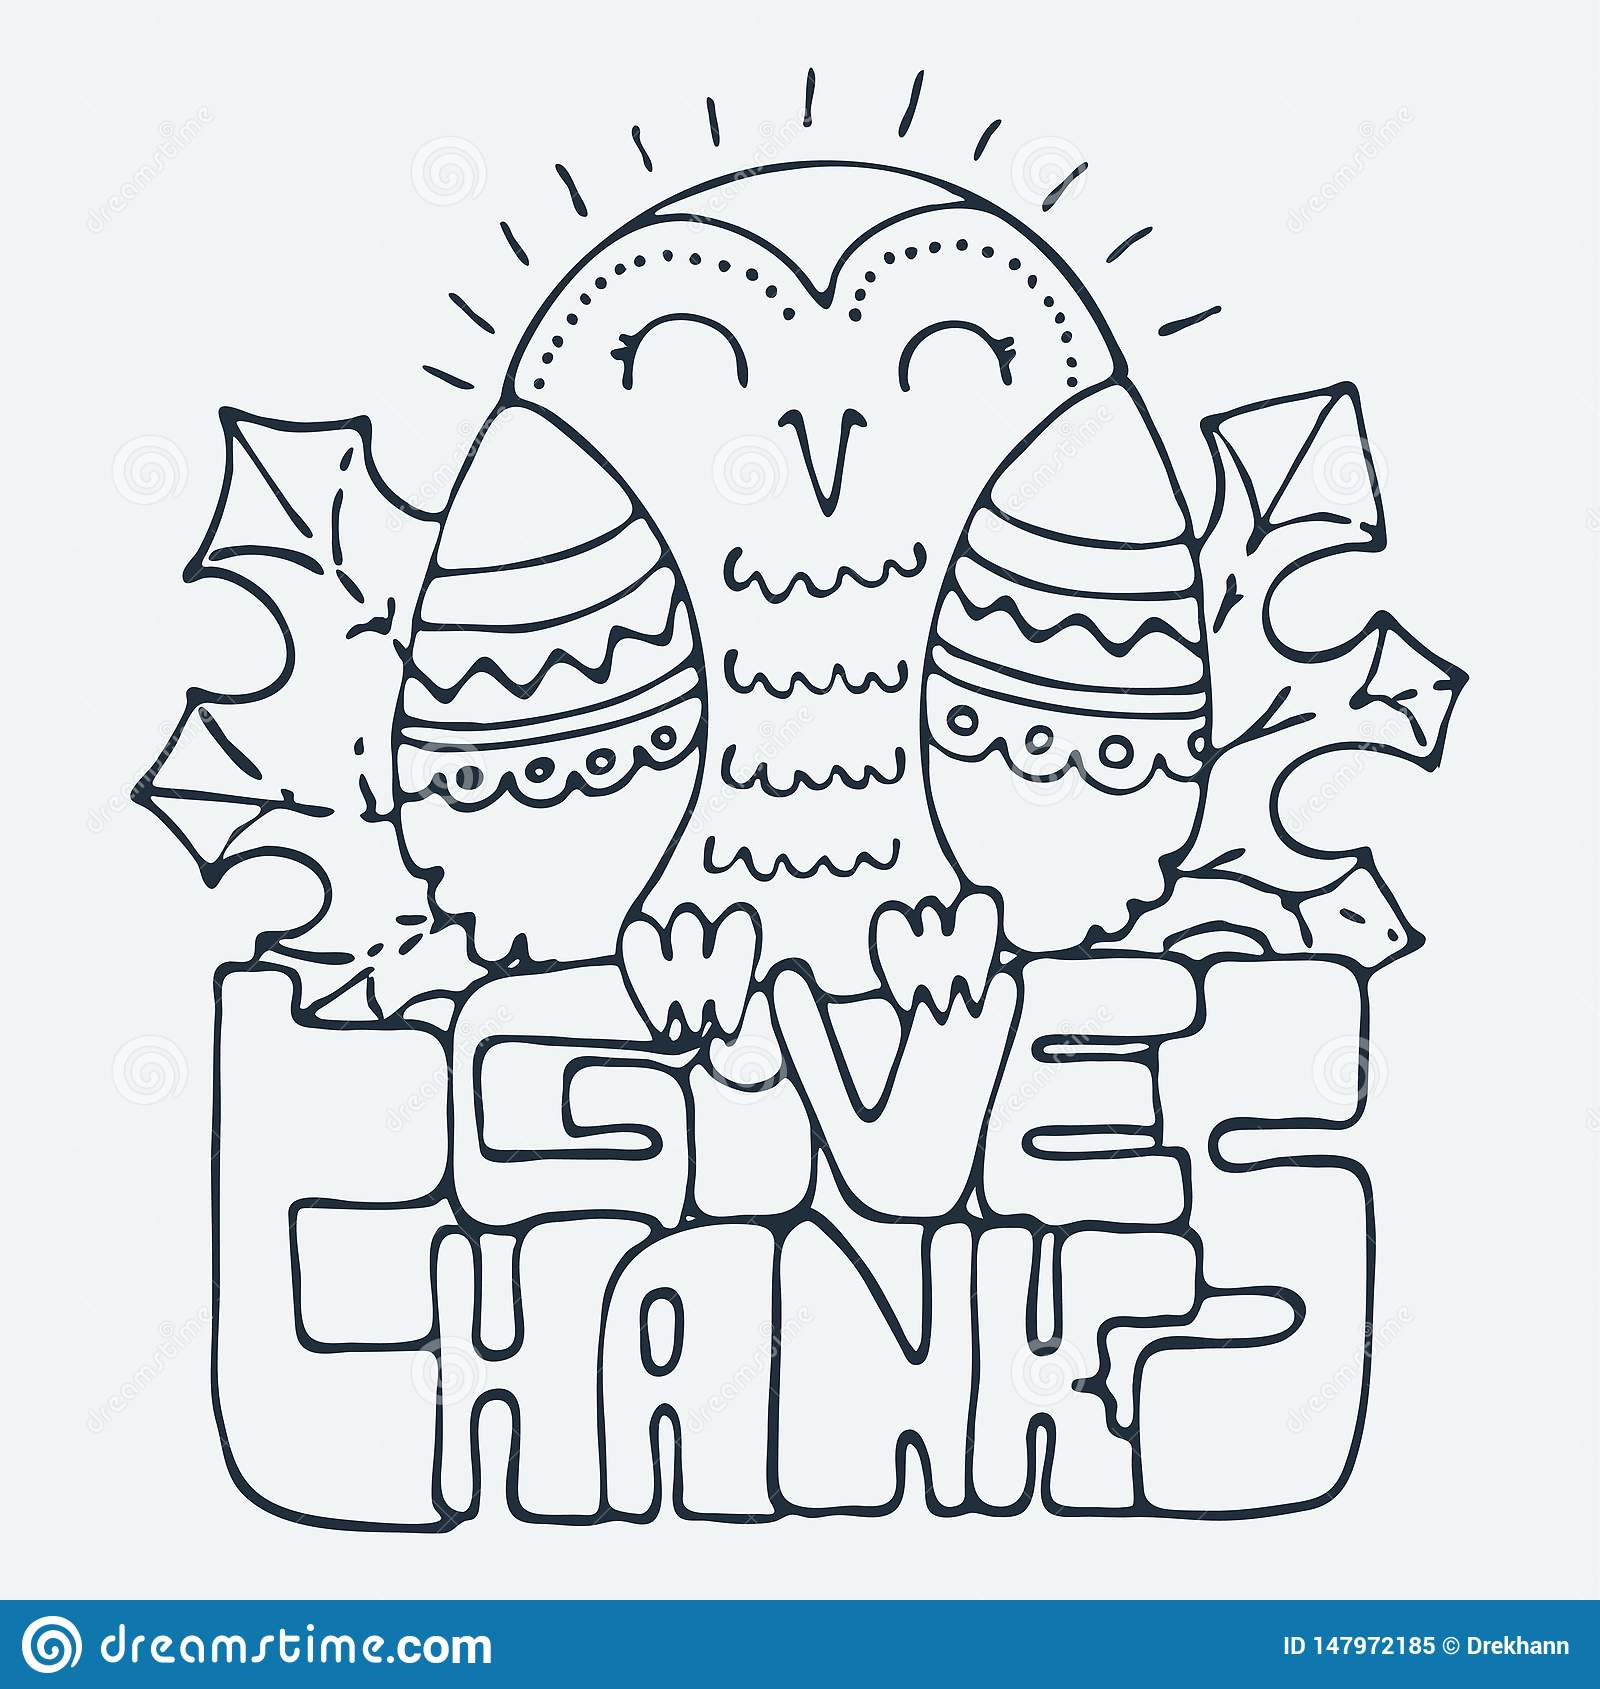 Cute Little Bird Cartoon Hand Drawn Vector Illustration Cute For Baby Coloring Pages T Shirt Print Fashion Prints And Other Stock Vector Illustration Of Cute Design 147972185